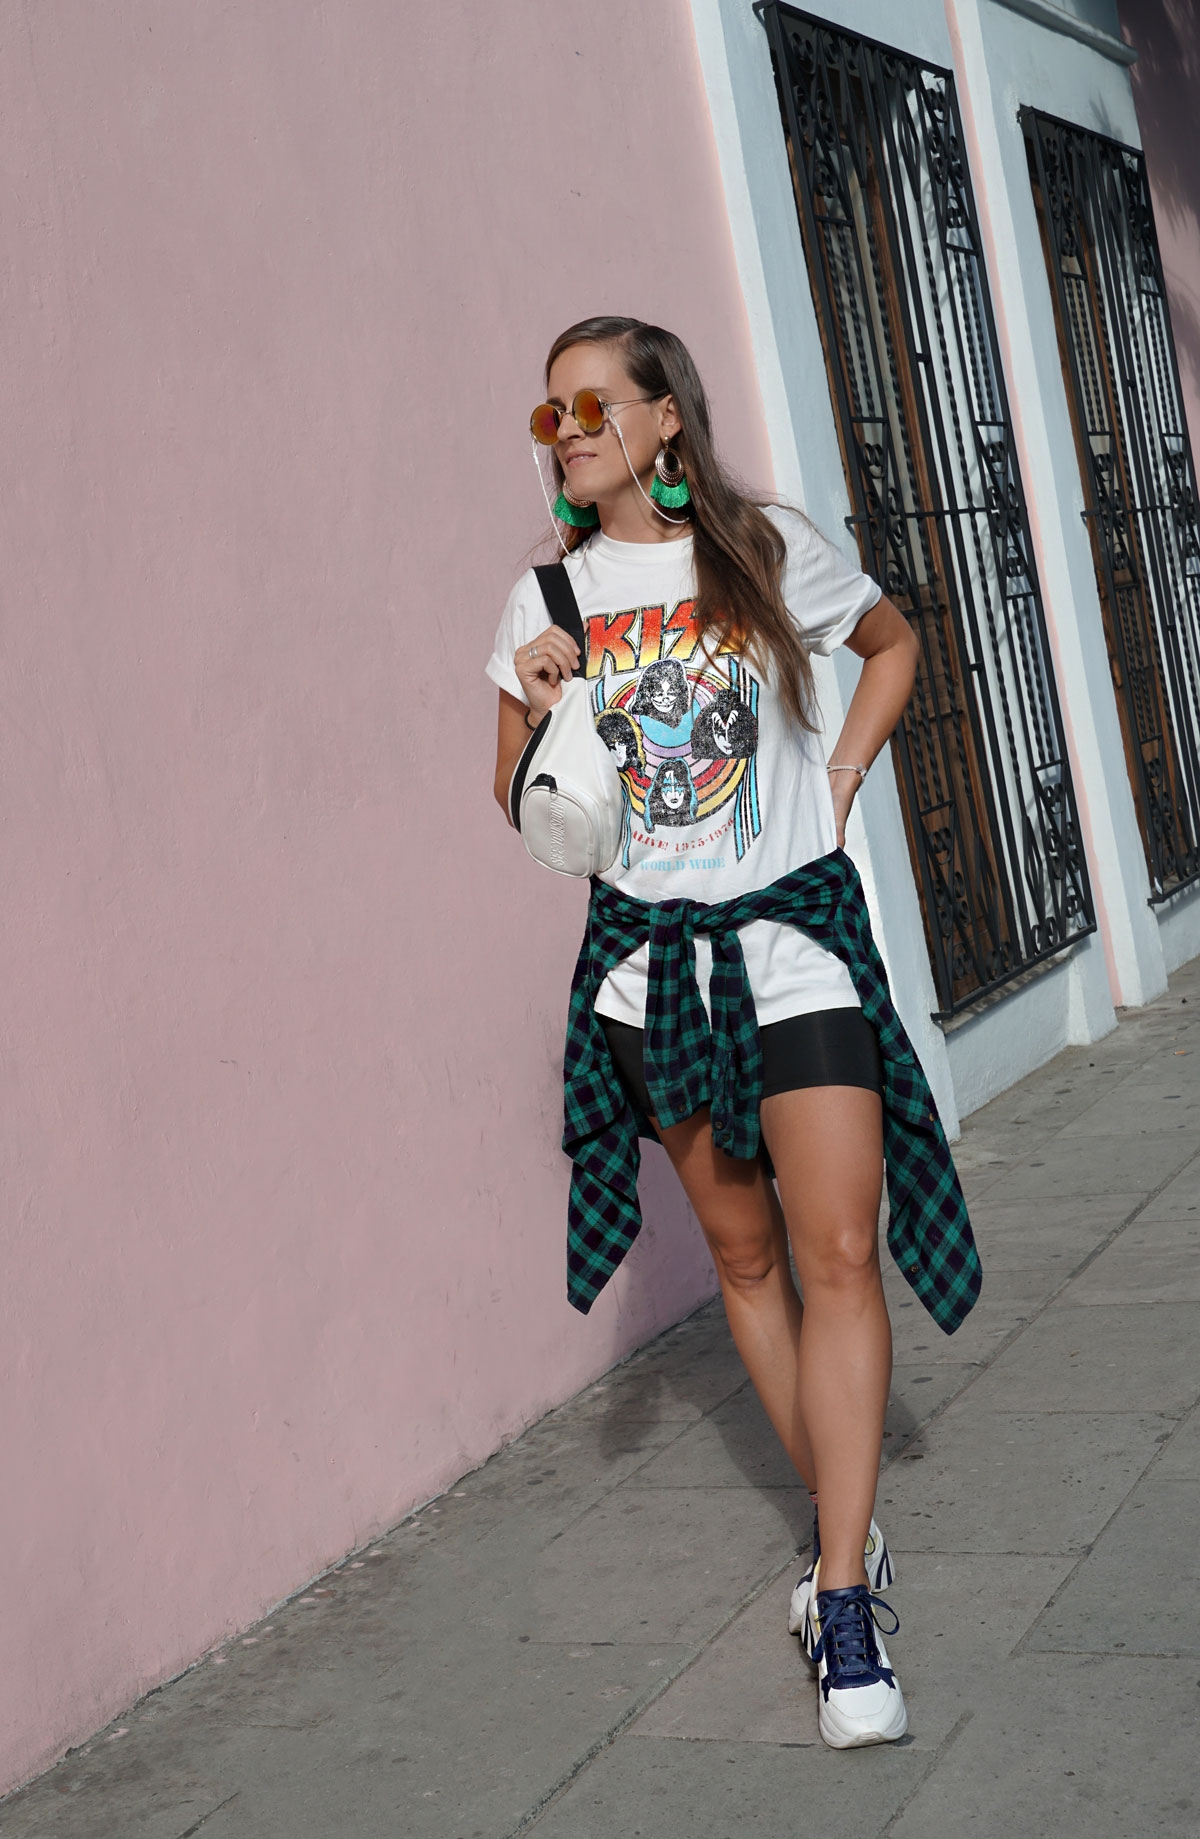 Andrea Steiner, fashion blogger from Strawberries 'n' Champagne based in Switzerland is wearing biker shorts with a band short from Kiss, plateau sneakers and a fanny pack.